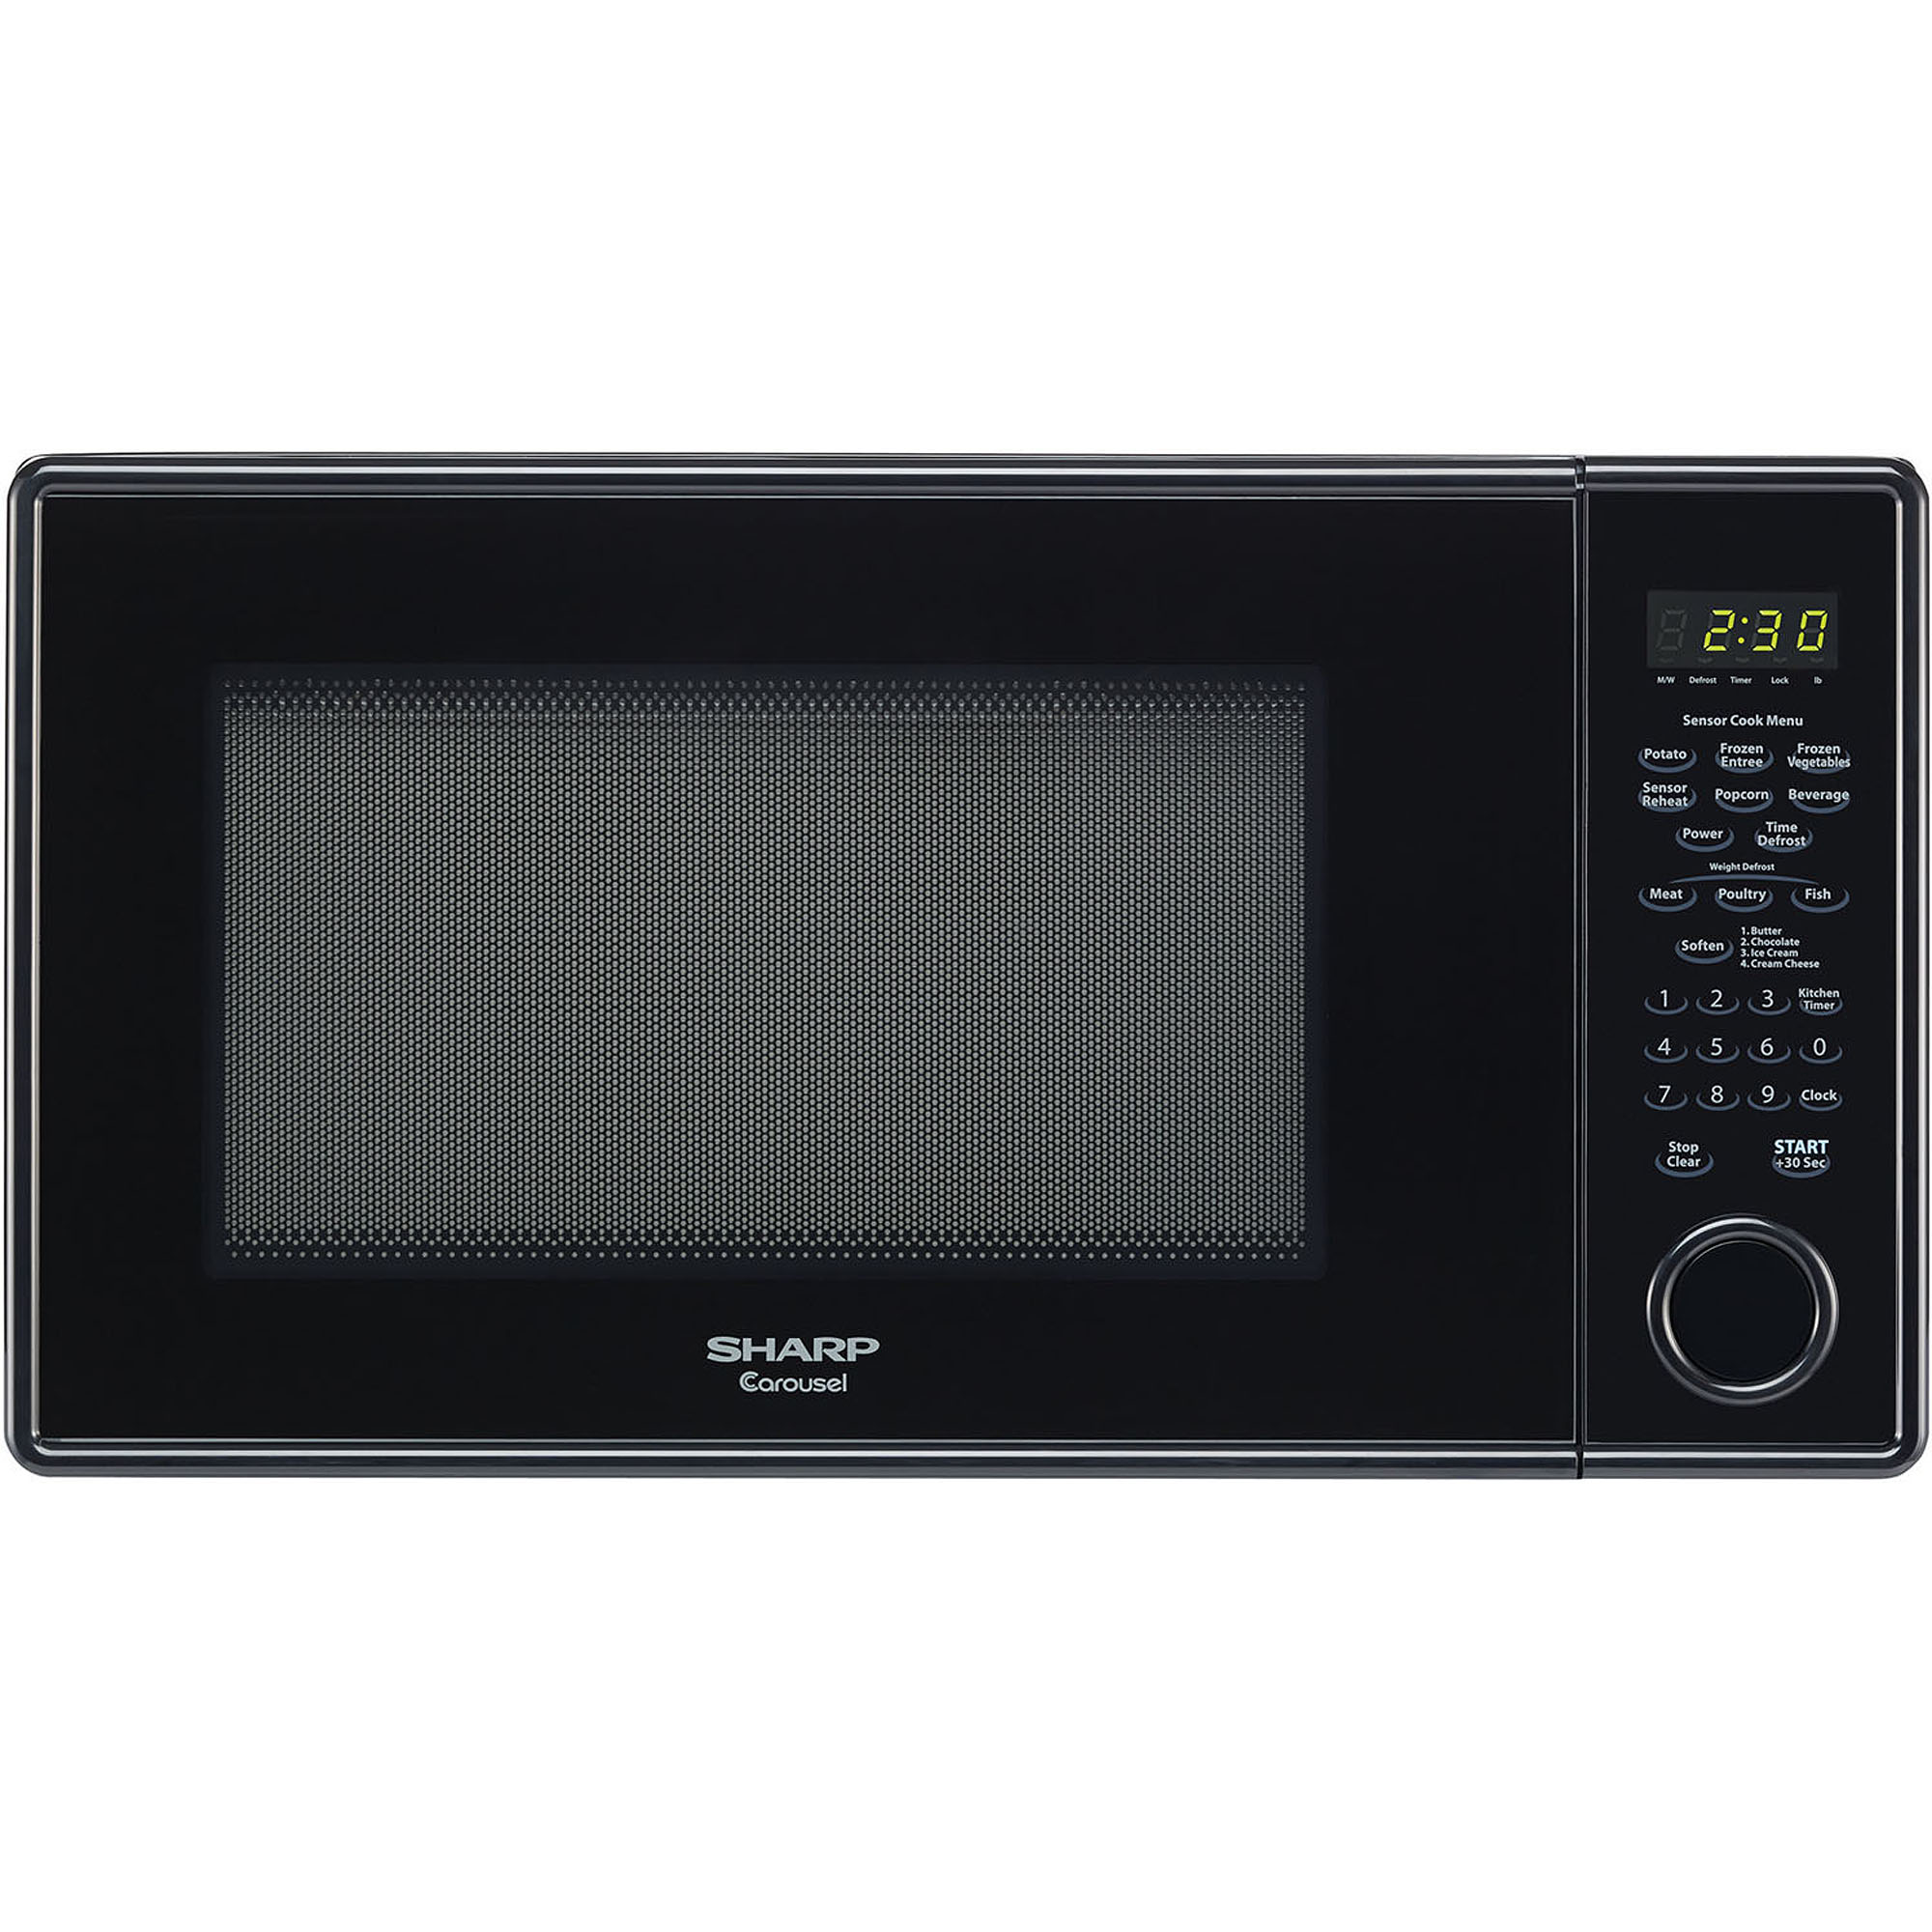 Sharp R459yk Carousel Countertop Microwave Oven 1 3 Cu Ft 1000w Black